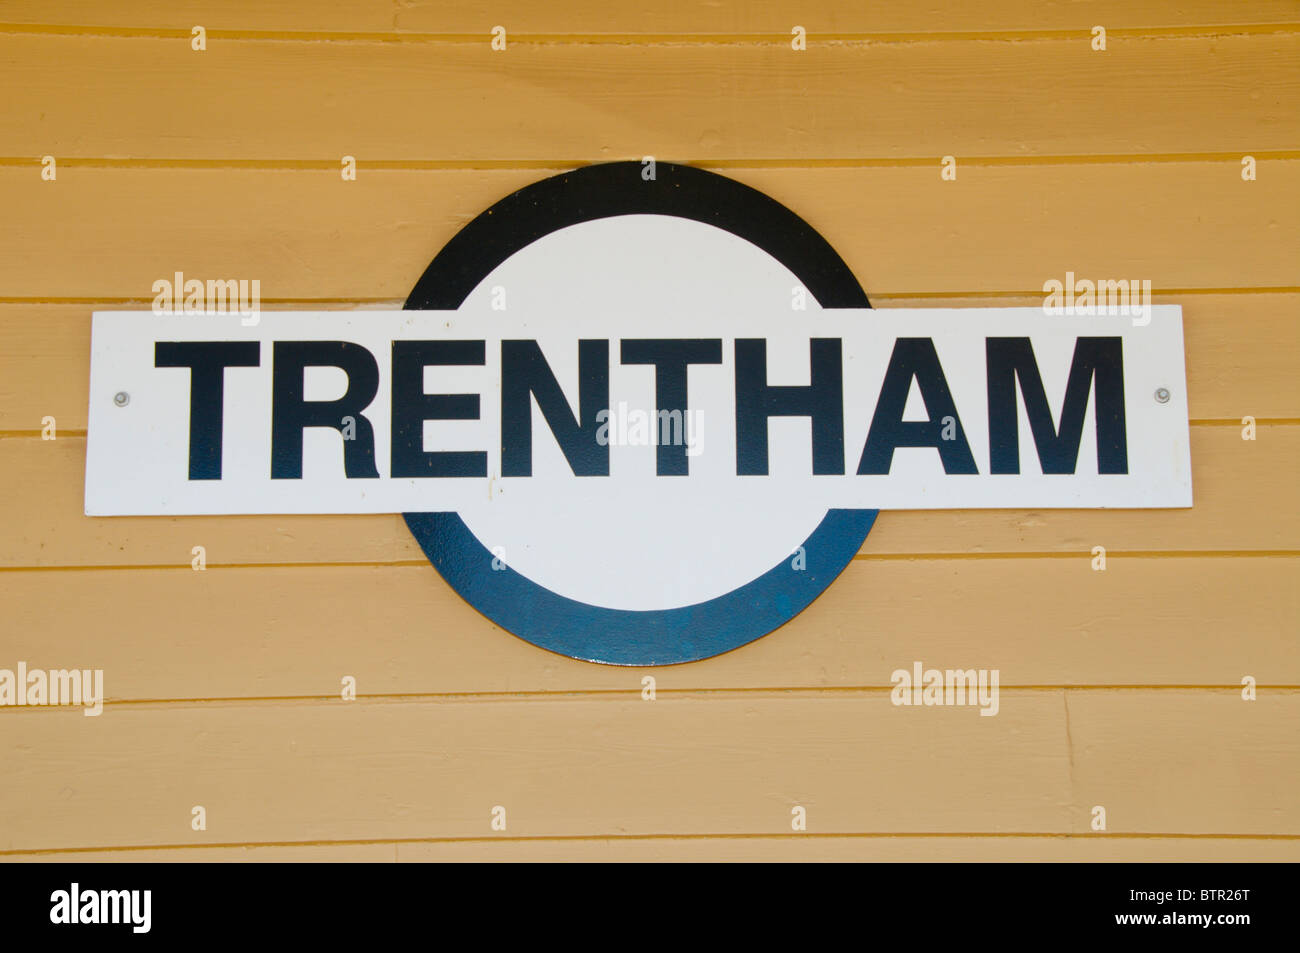 Australia, Central Victoria, Trentham station sign - Stock Image